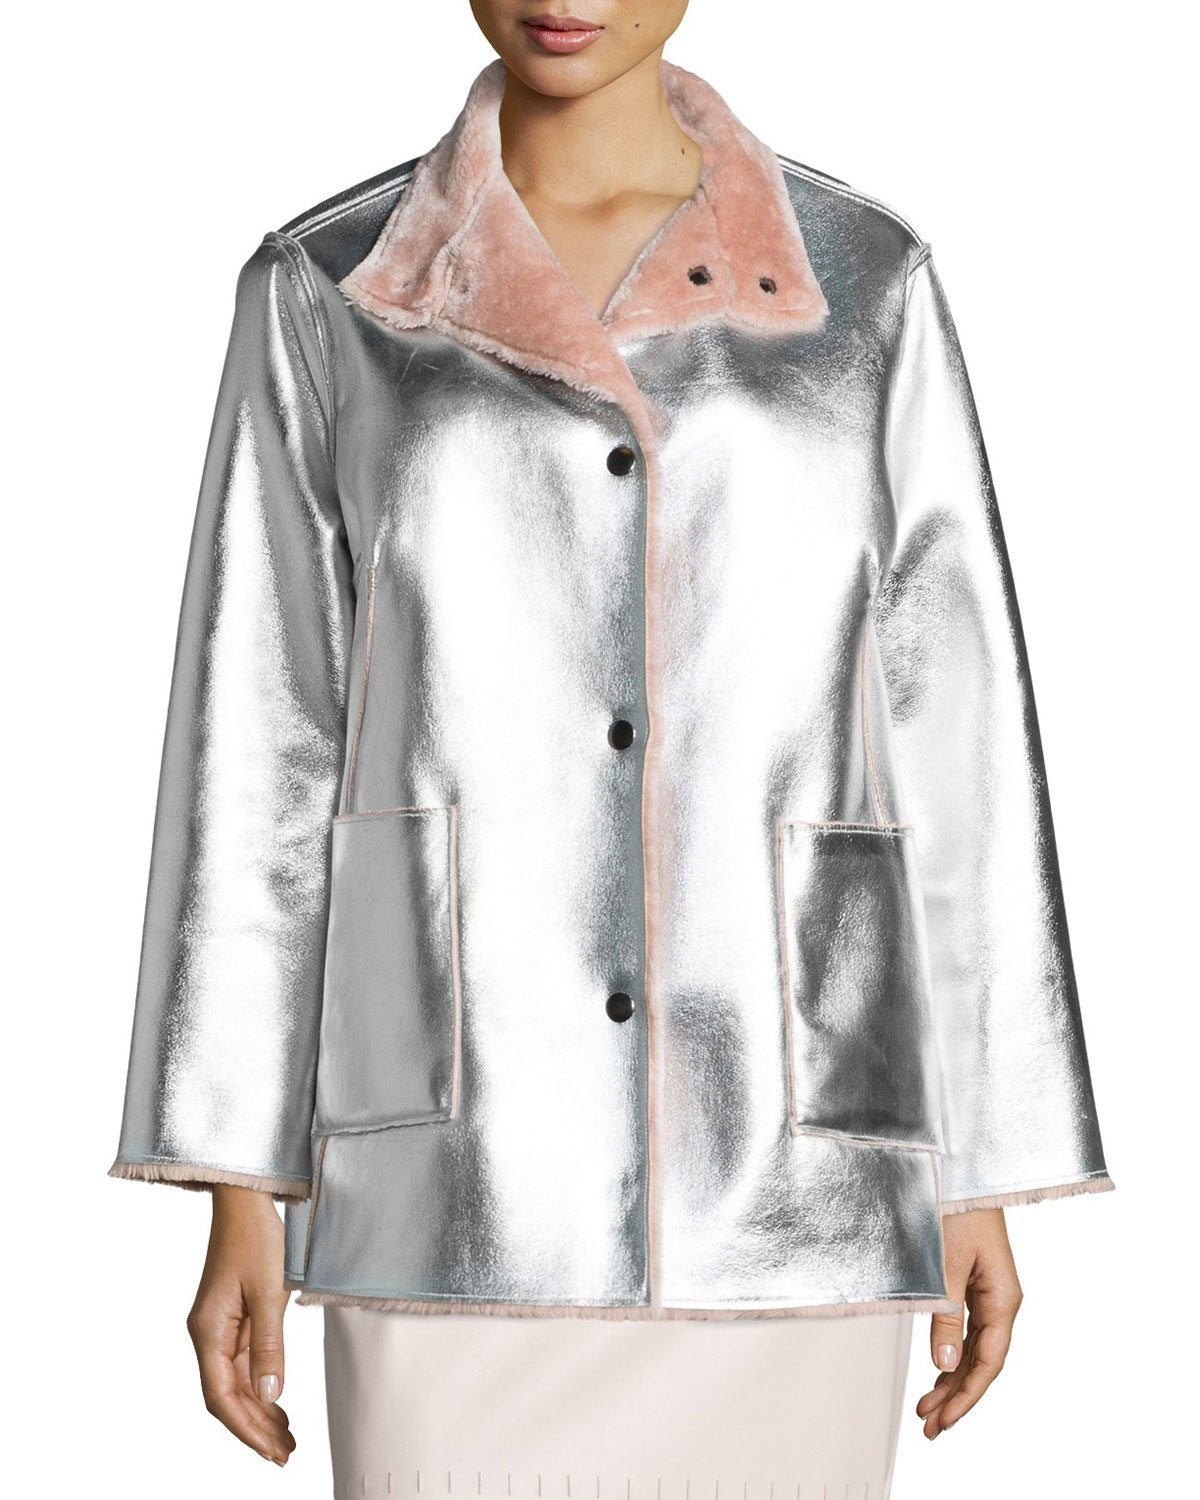 d539c2a4a6ff Lyst - Opening Ceremony Faux-fur Reversible Metallic Jacket in Metallic